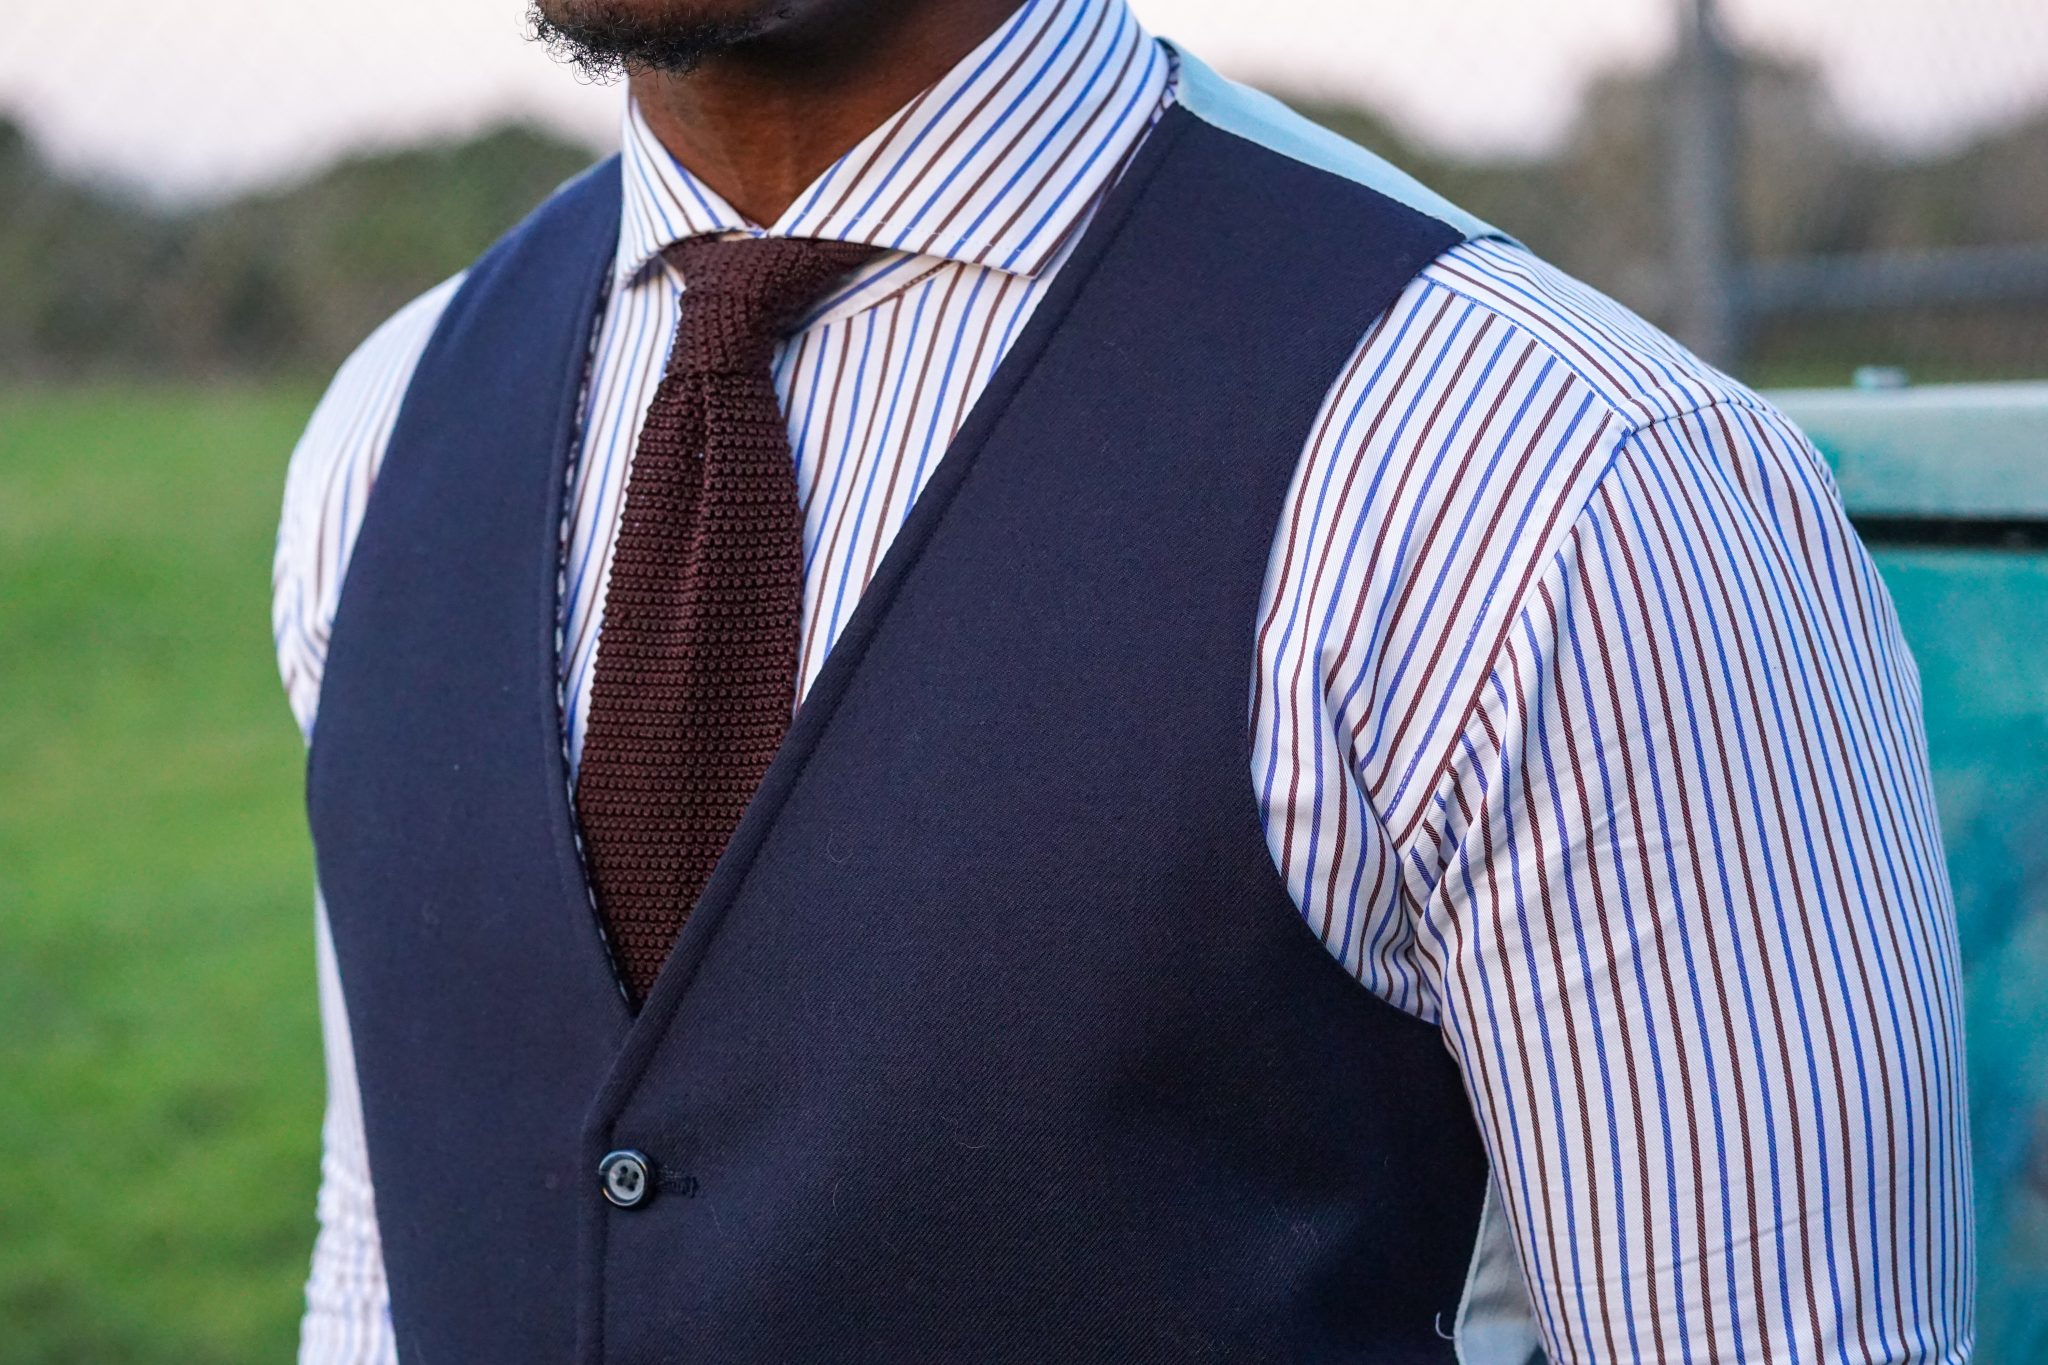 dapper-advisor-black-man-wearing-navy-waistcoat-brown-silk-knit-tie-custom-itailor-stripe-shirt-men-1